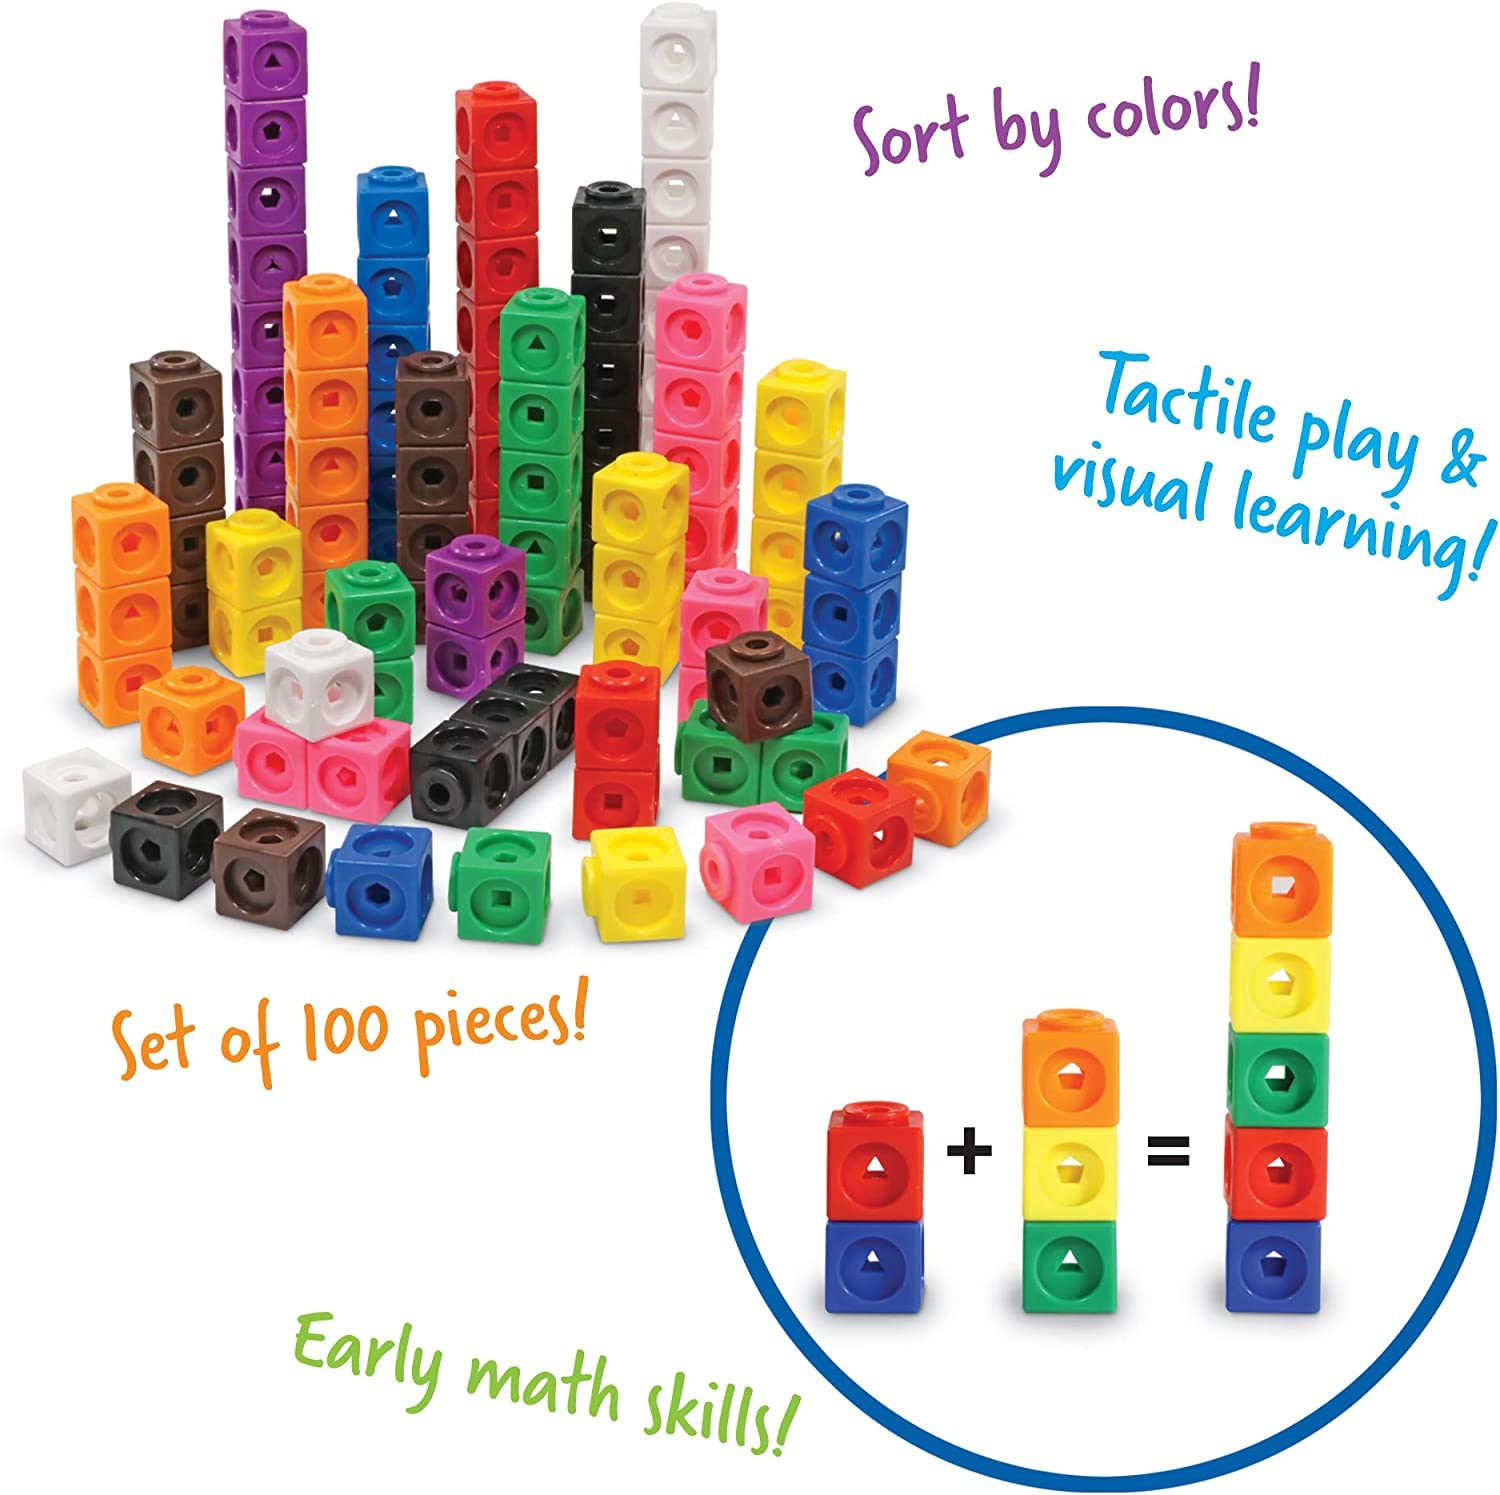 Learning Resources MathLink Cubes, Homeschool, Educational Counting Toy, Math Cubes, Linking Cubes, Early Math Skills, Math Manipulatives, Set of 100 Cubes